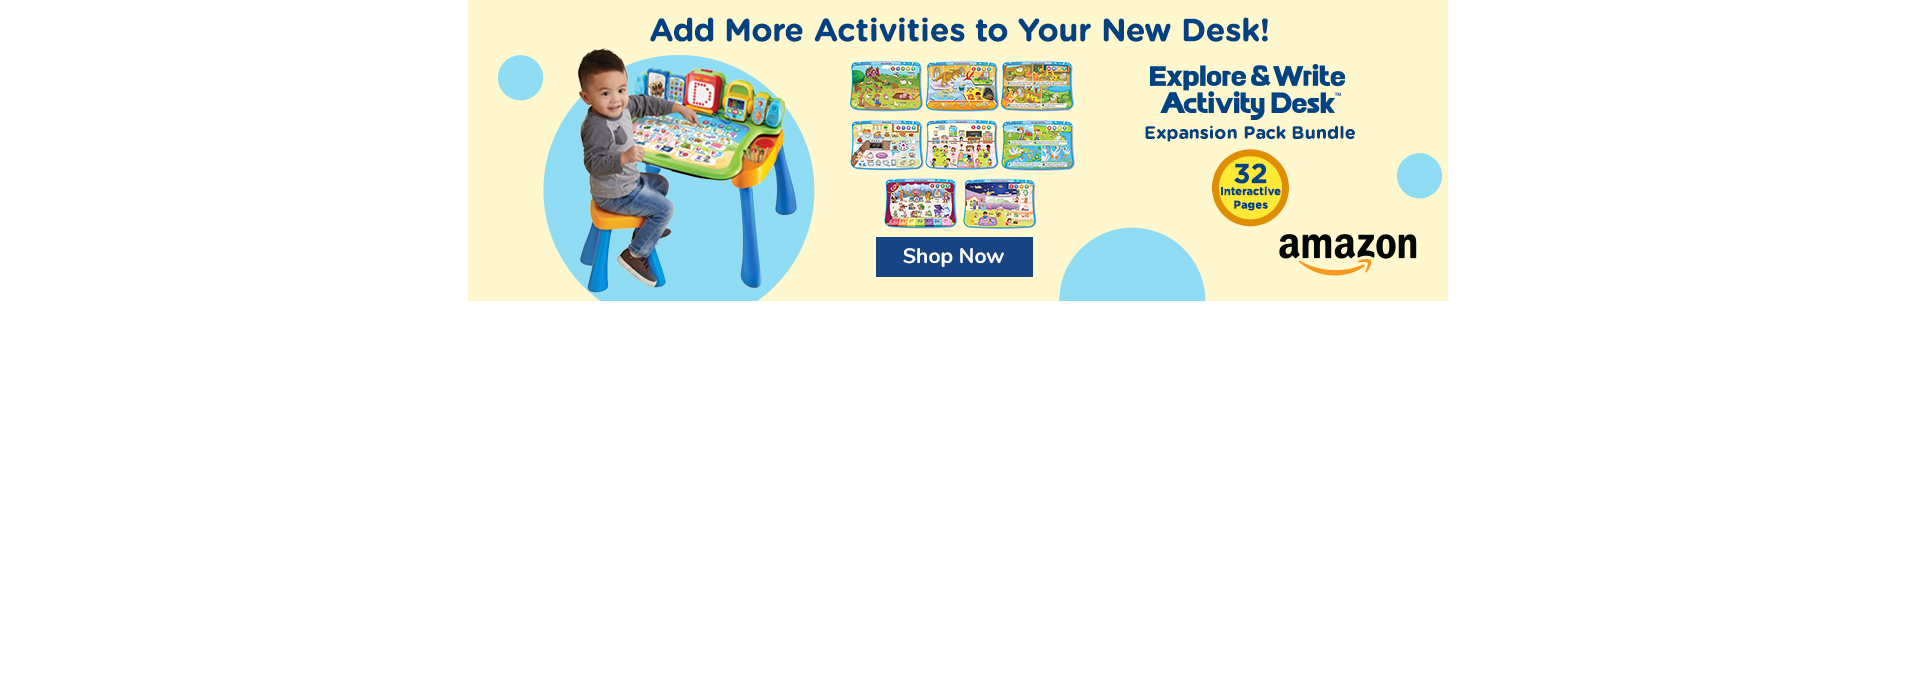 Add Expansion Packs to your new learning desk